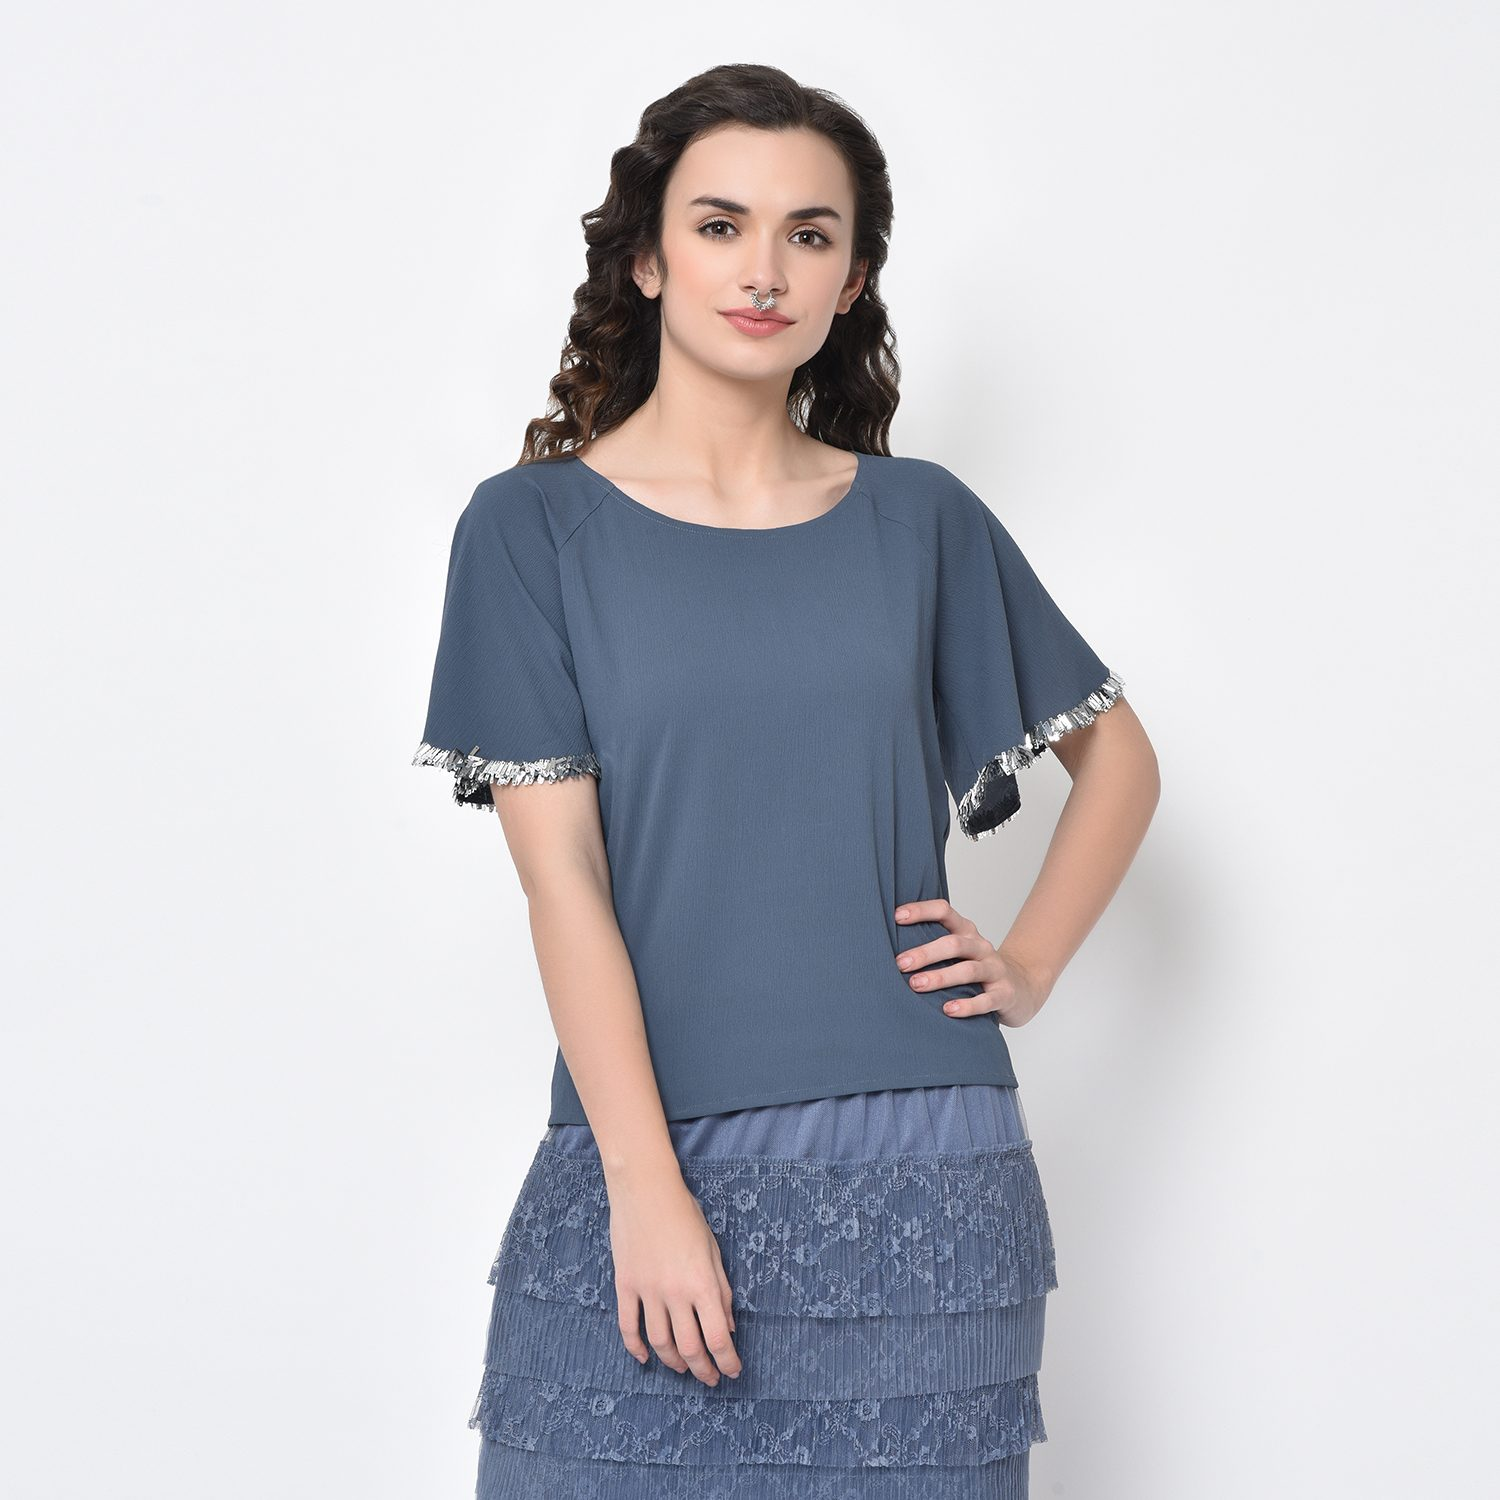 Buy Stone Blue Drape Top With Silver Hand Embroidery For Women